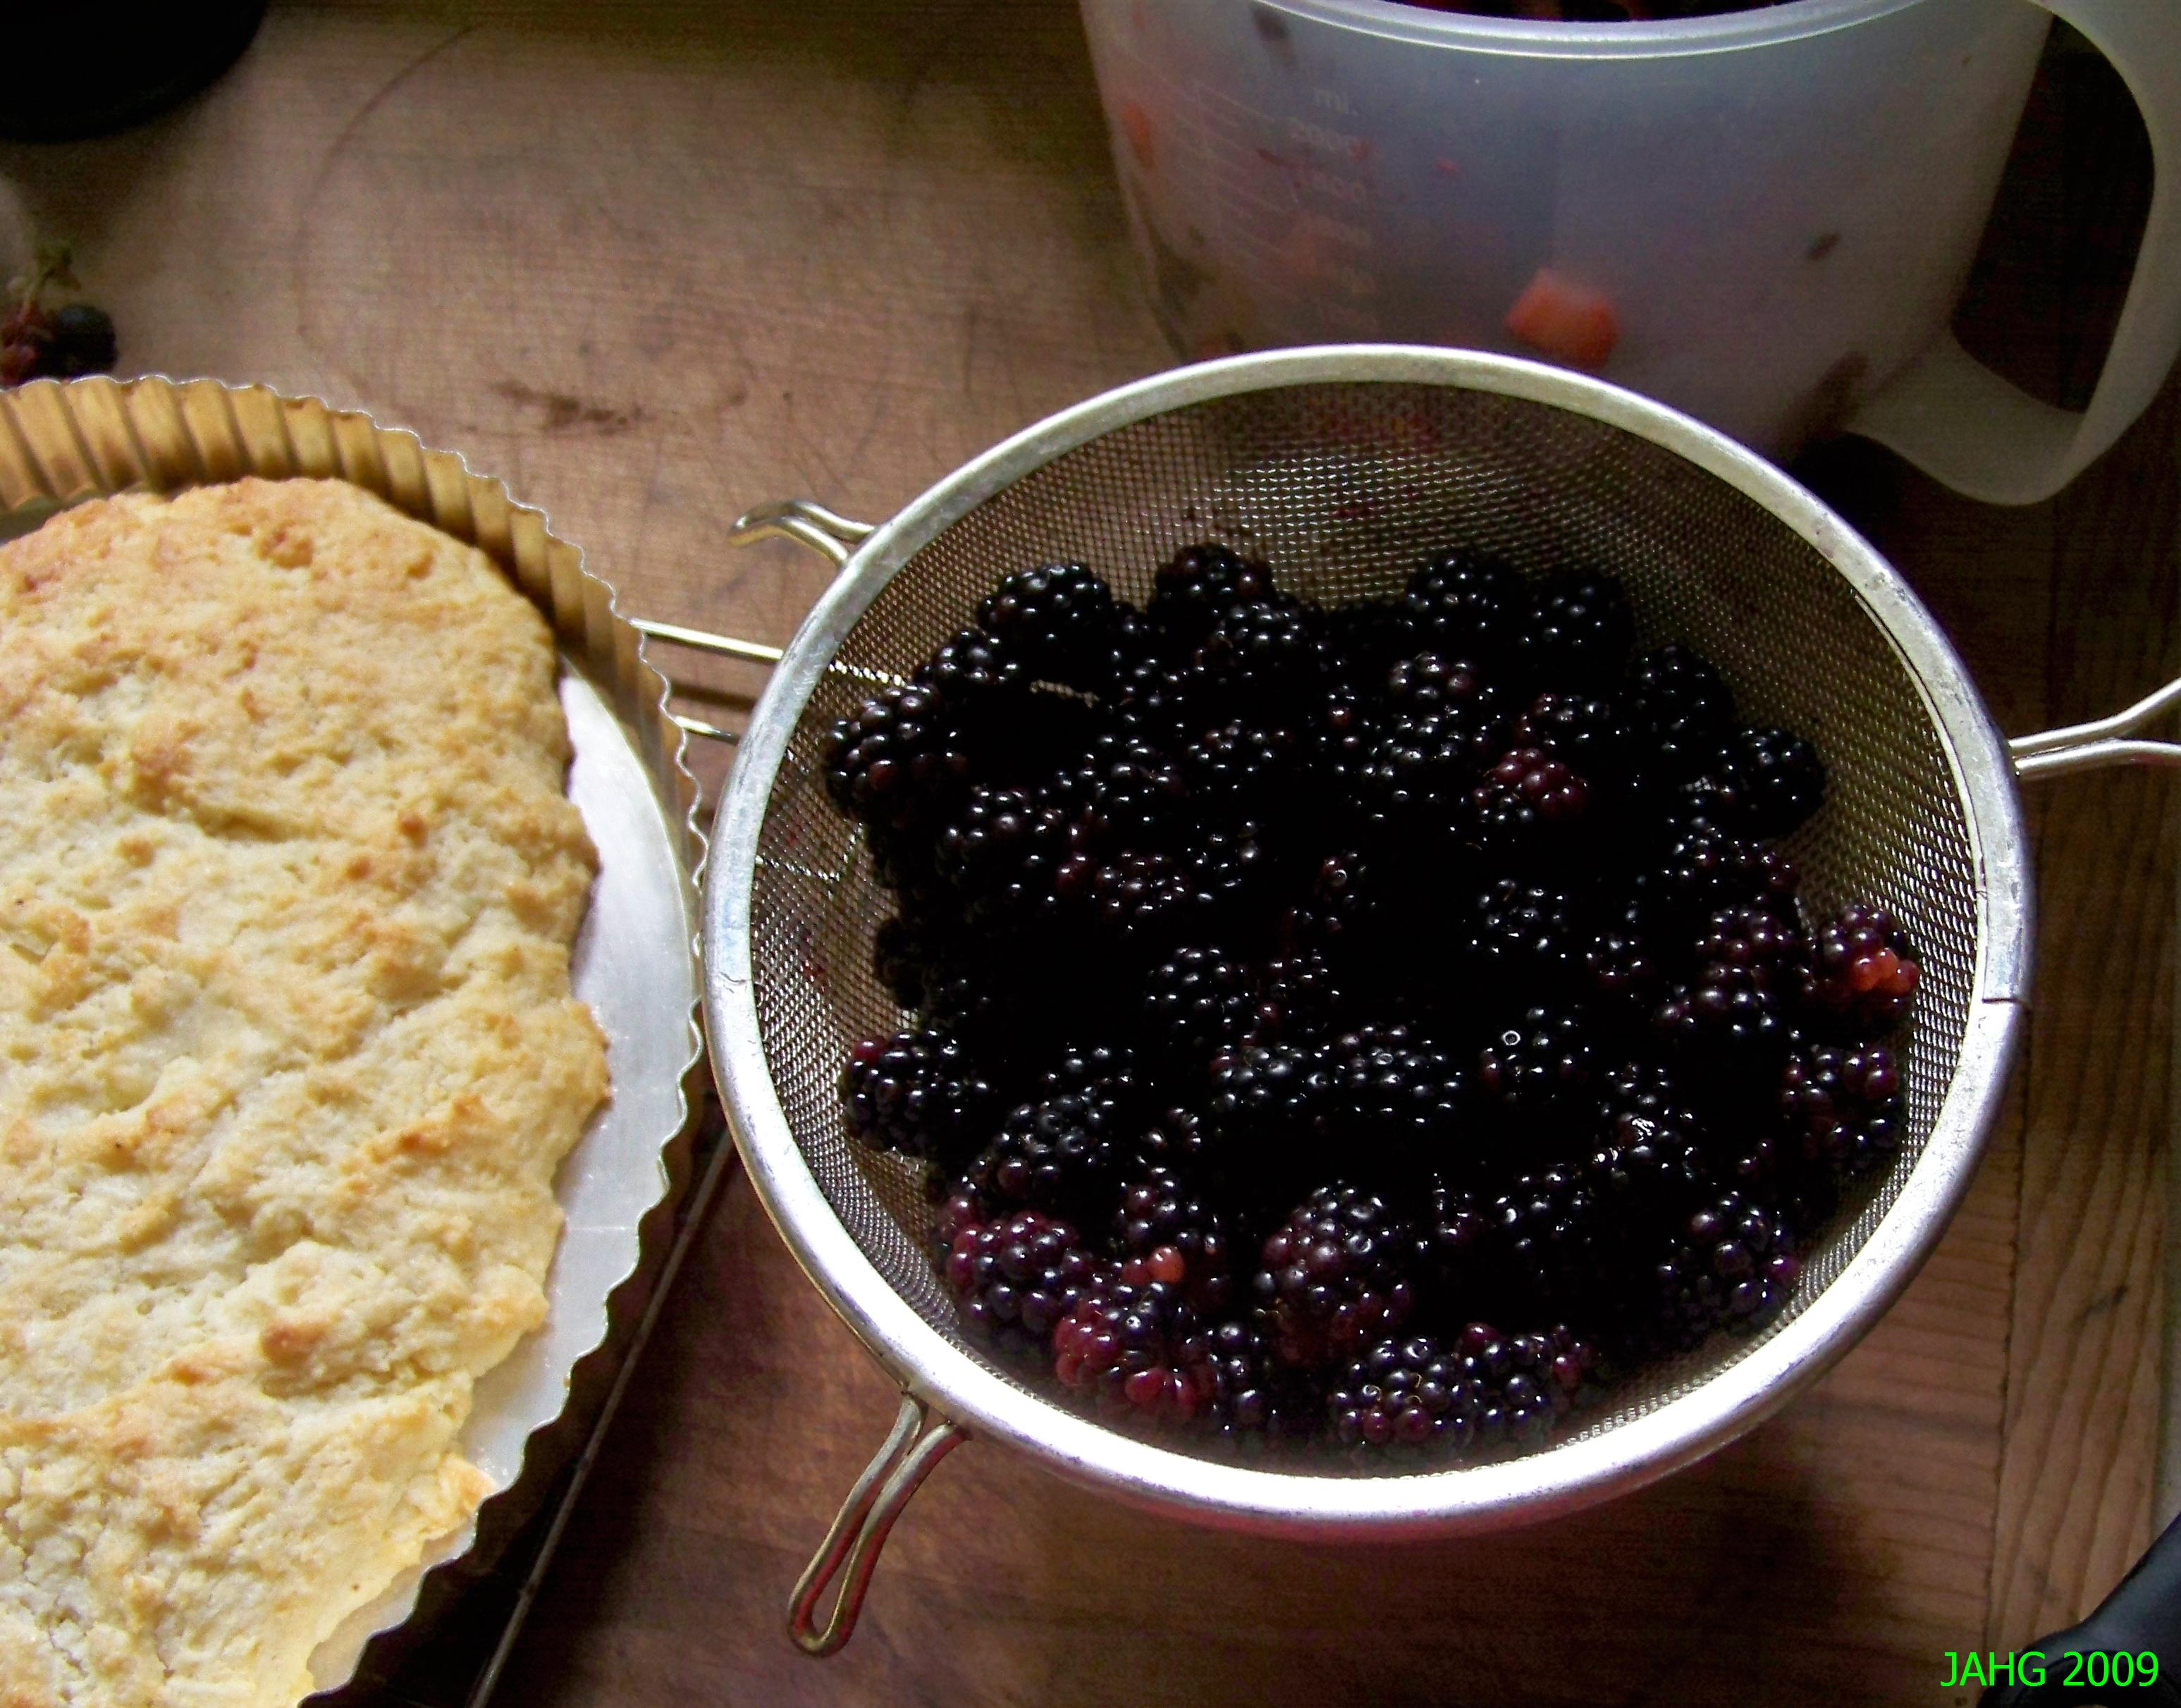 Freshly washed Blackberries waiting to made into Blackberry Shortcake.